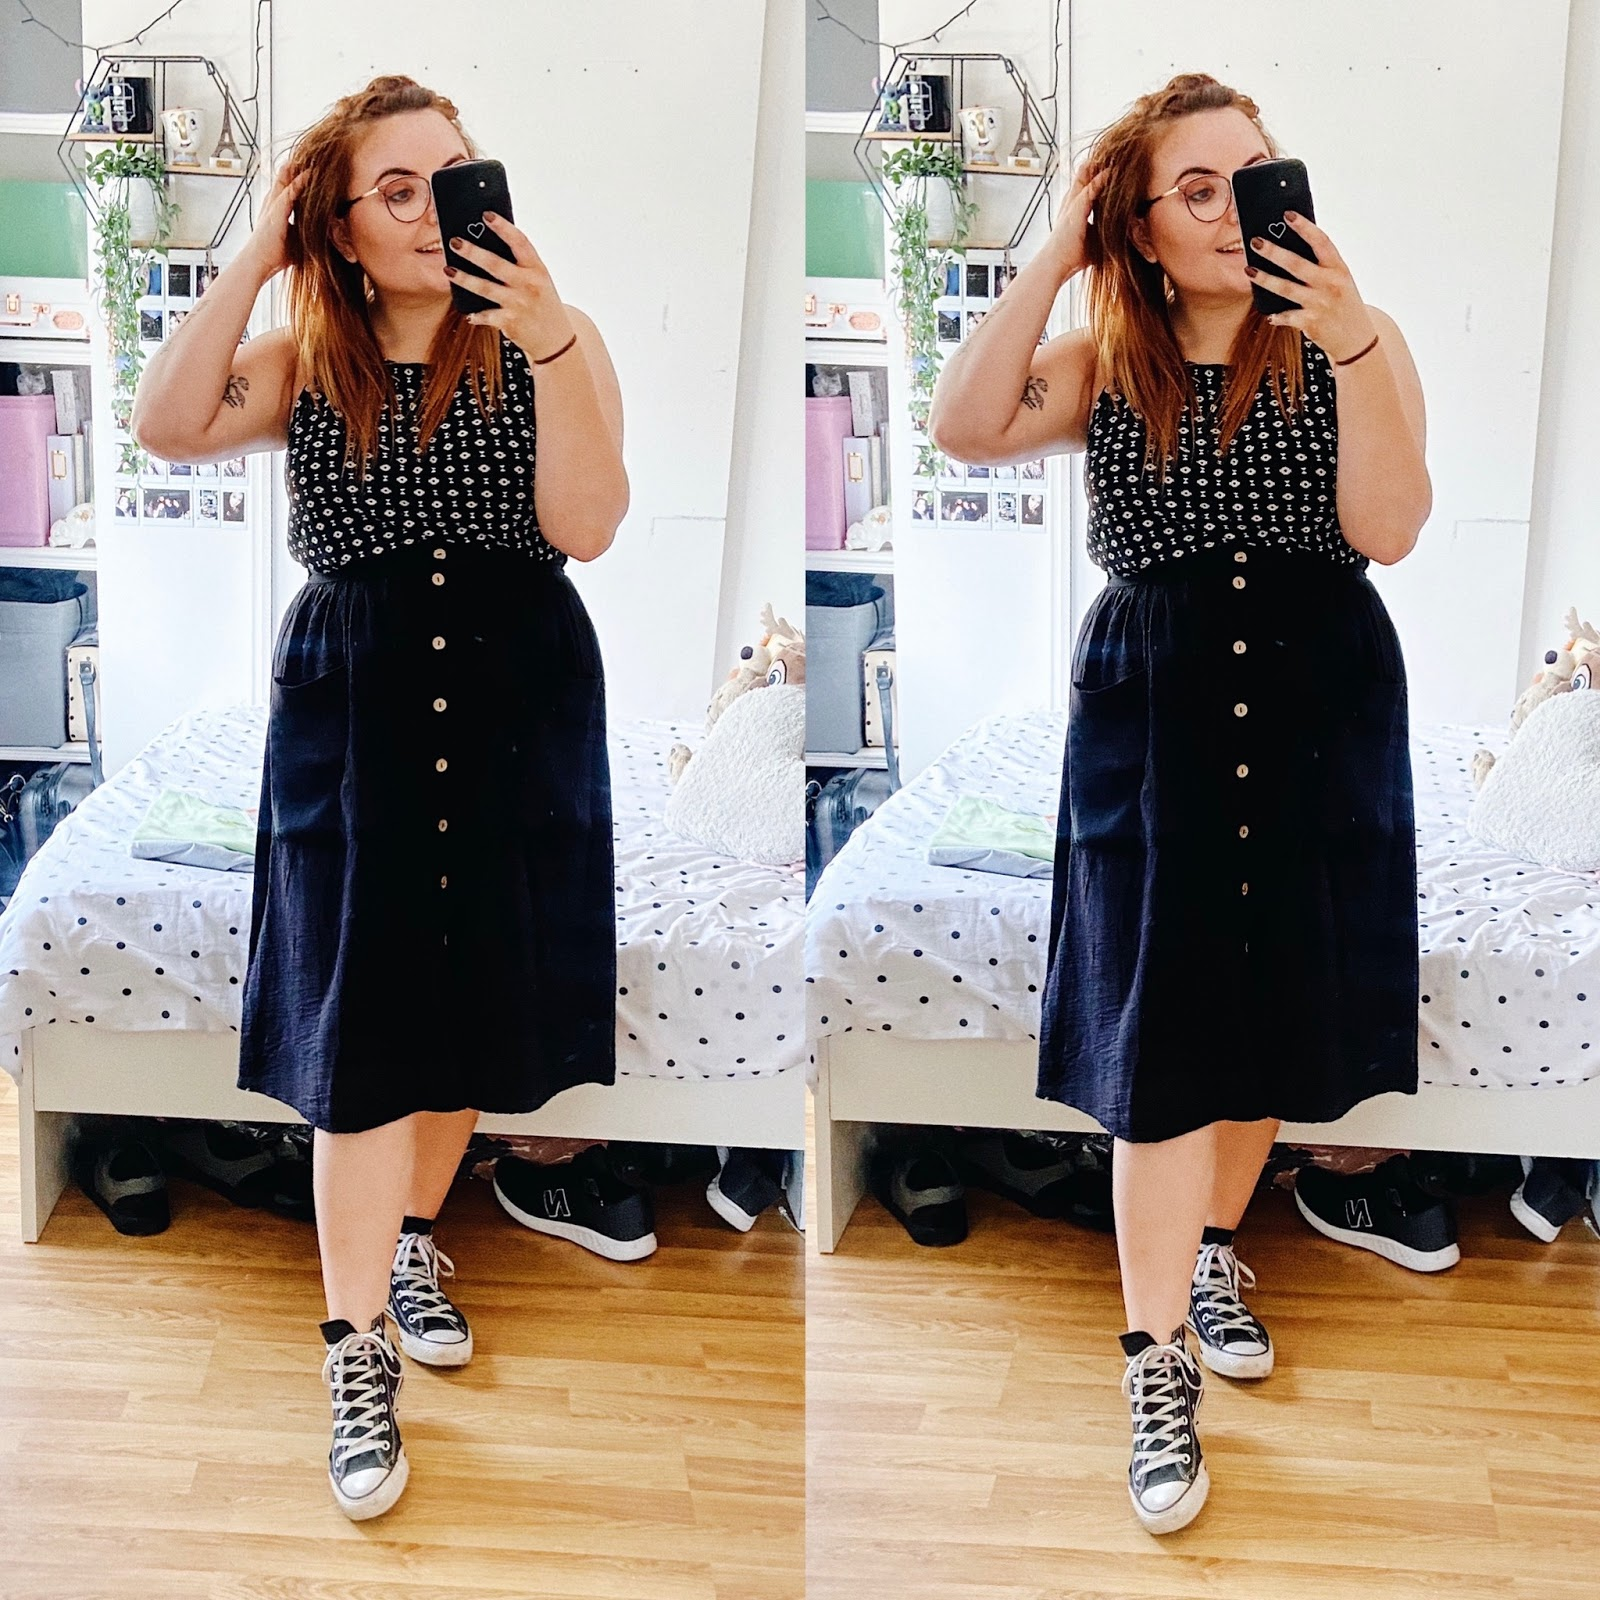 See The Stars - stay at home outfit ideas